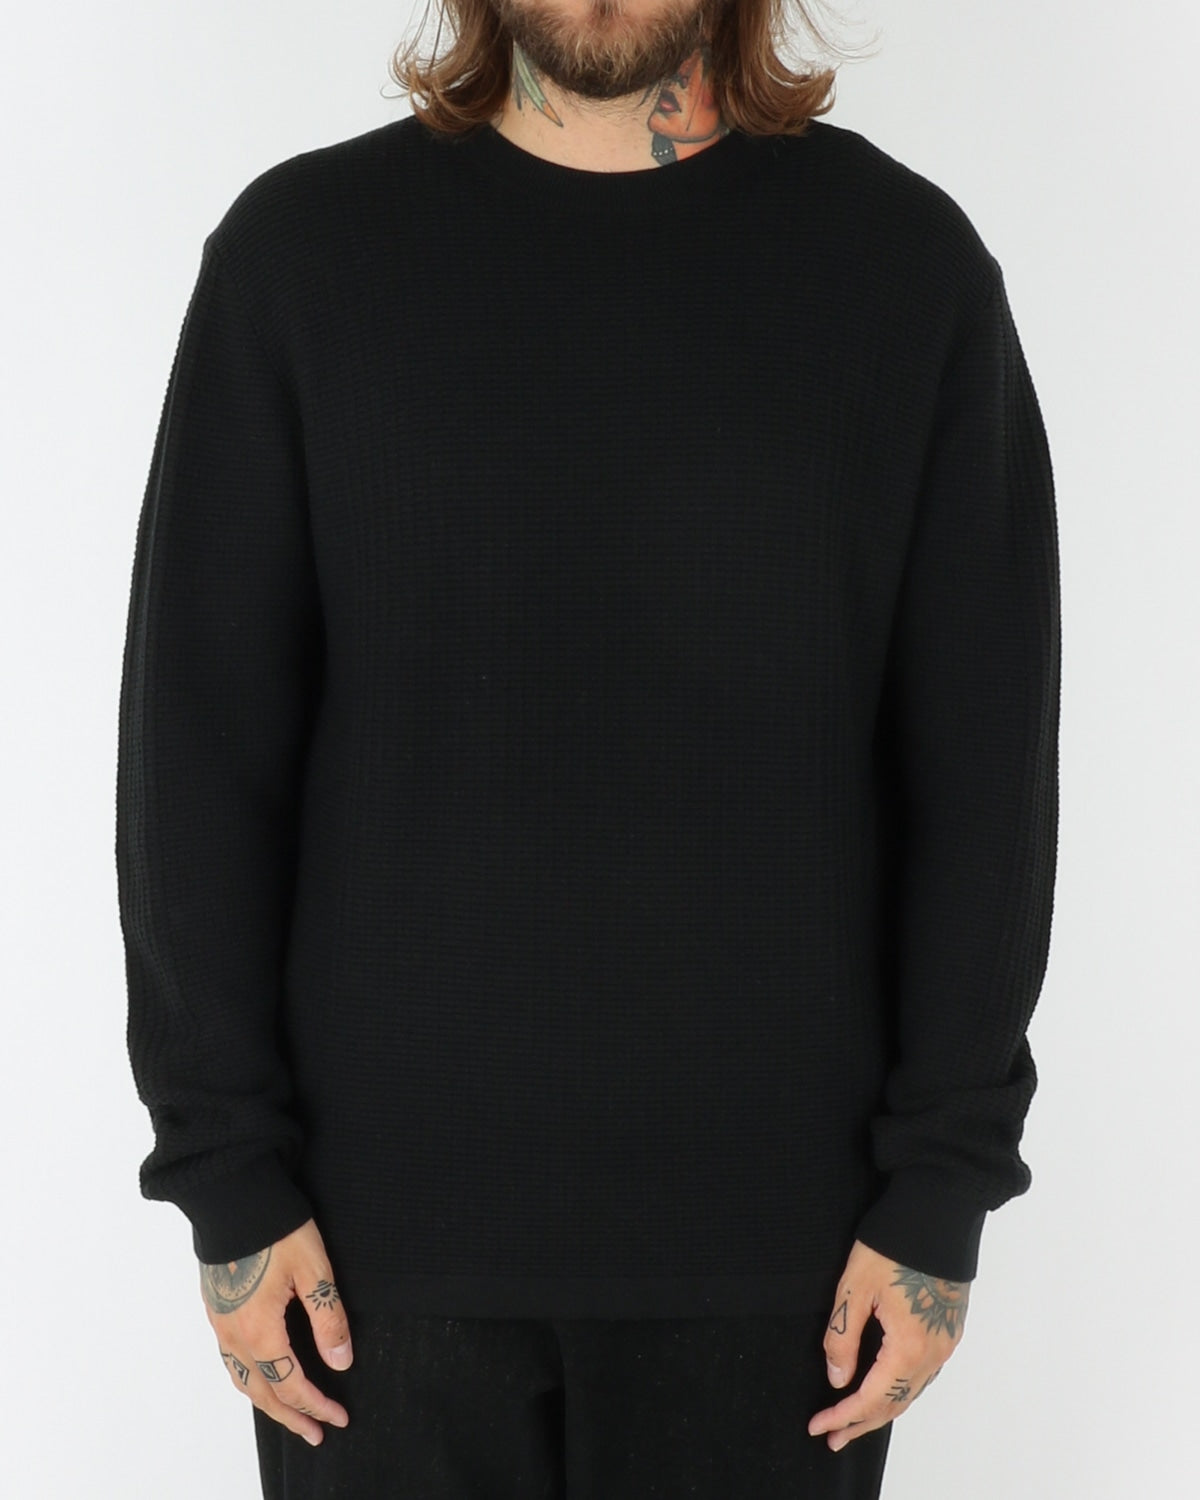 journal clothing_sins knit_black_view_2_3